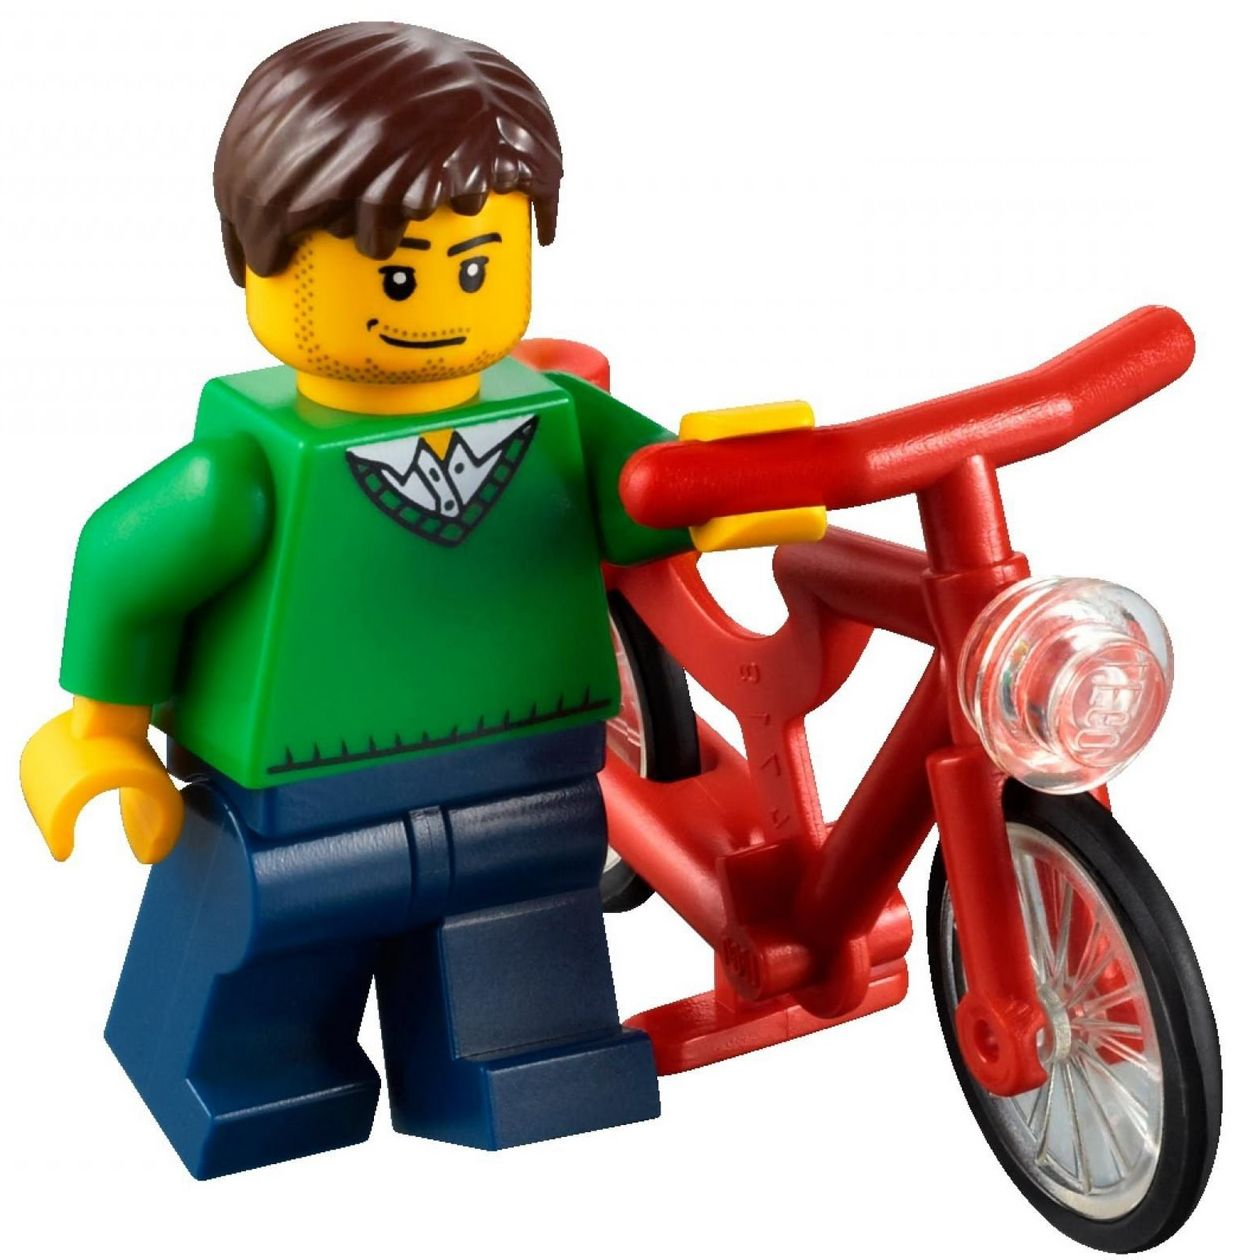 Lego-4435-bicycle